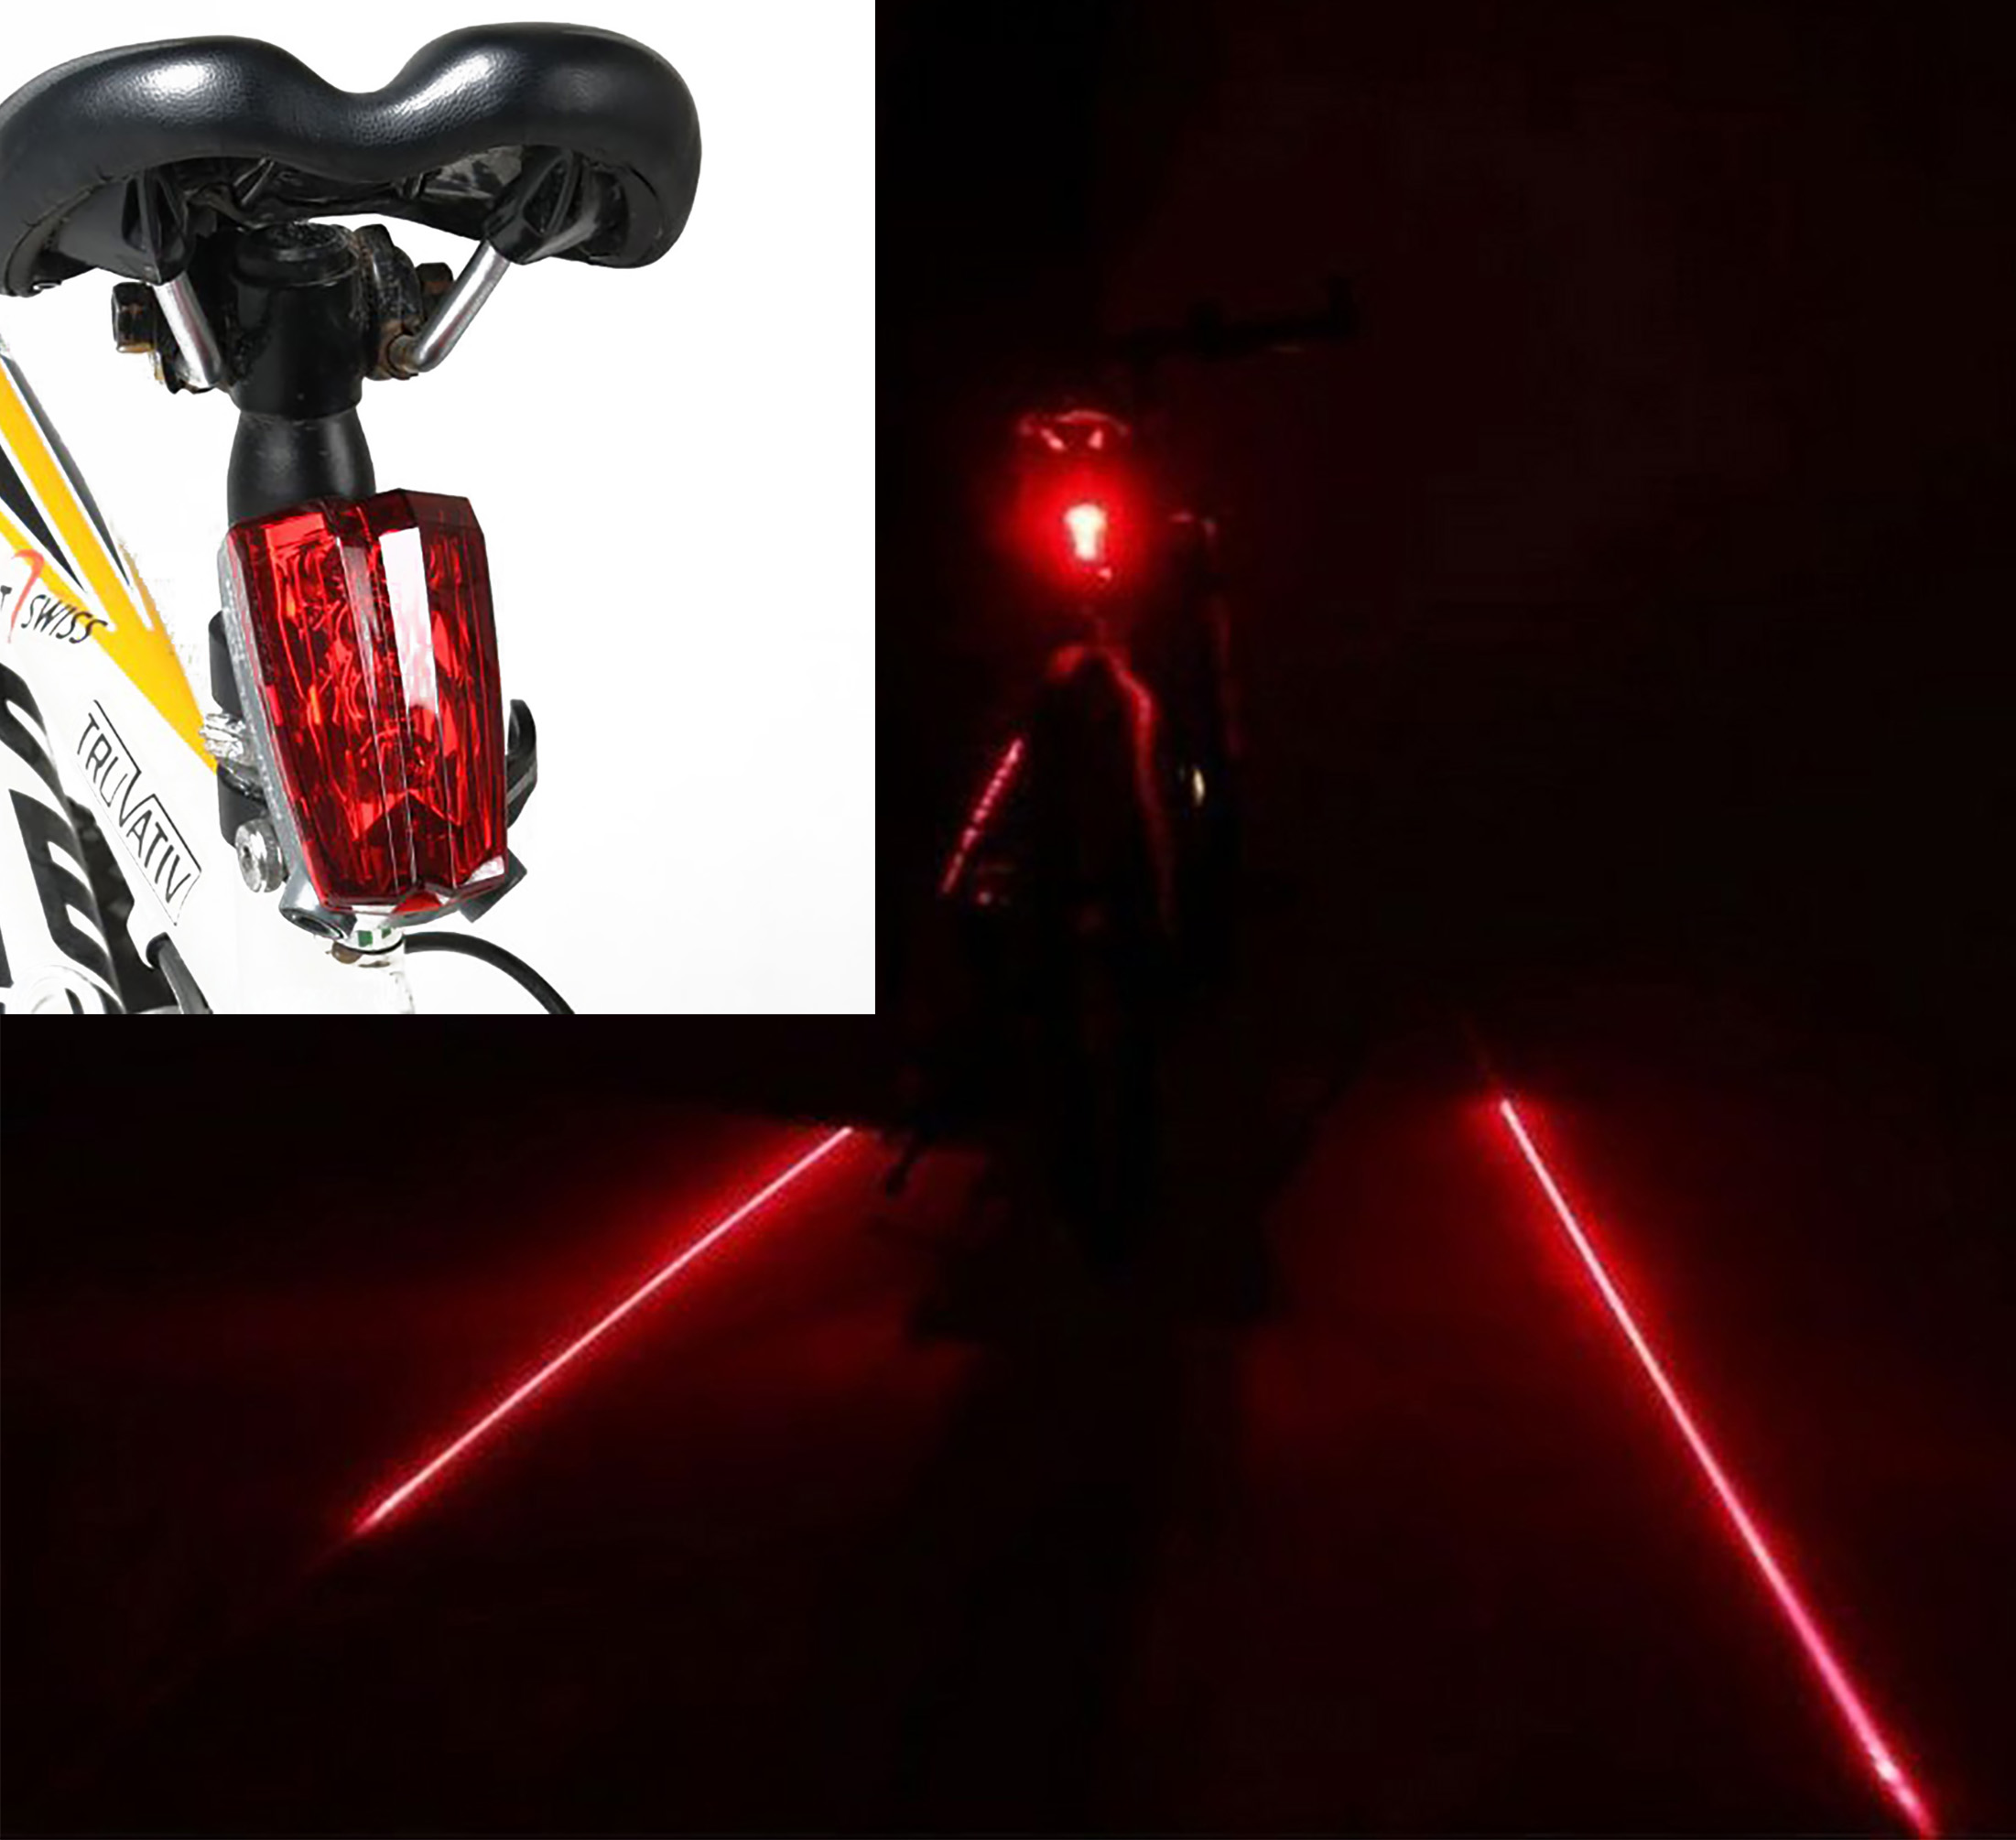 Bike Tail Light - Bicycle Rear Light for Lane Safety - 5 LED & 2 Laser Beam for Cycling Riding Warning